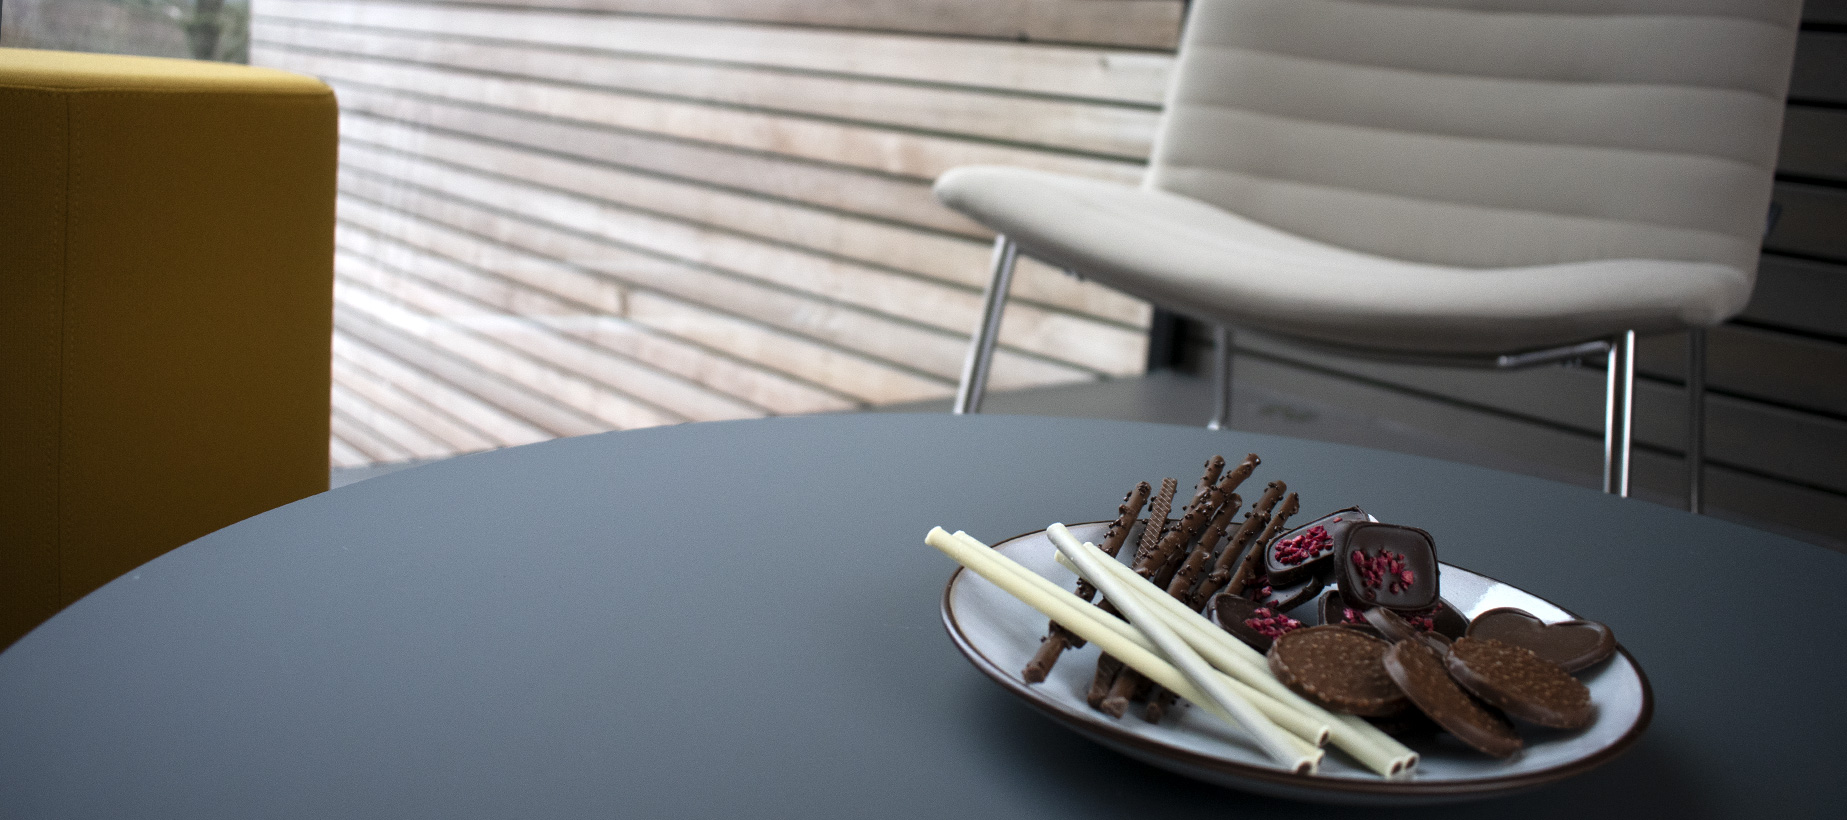 Arwem is the partner of your chocolated breaks